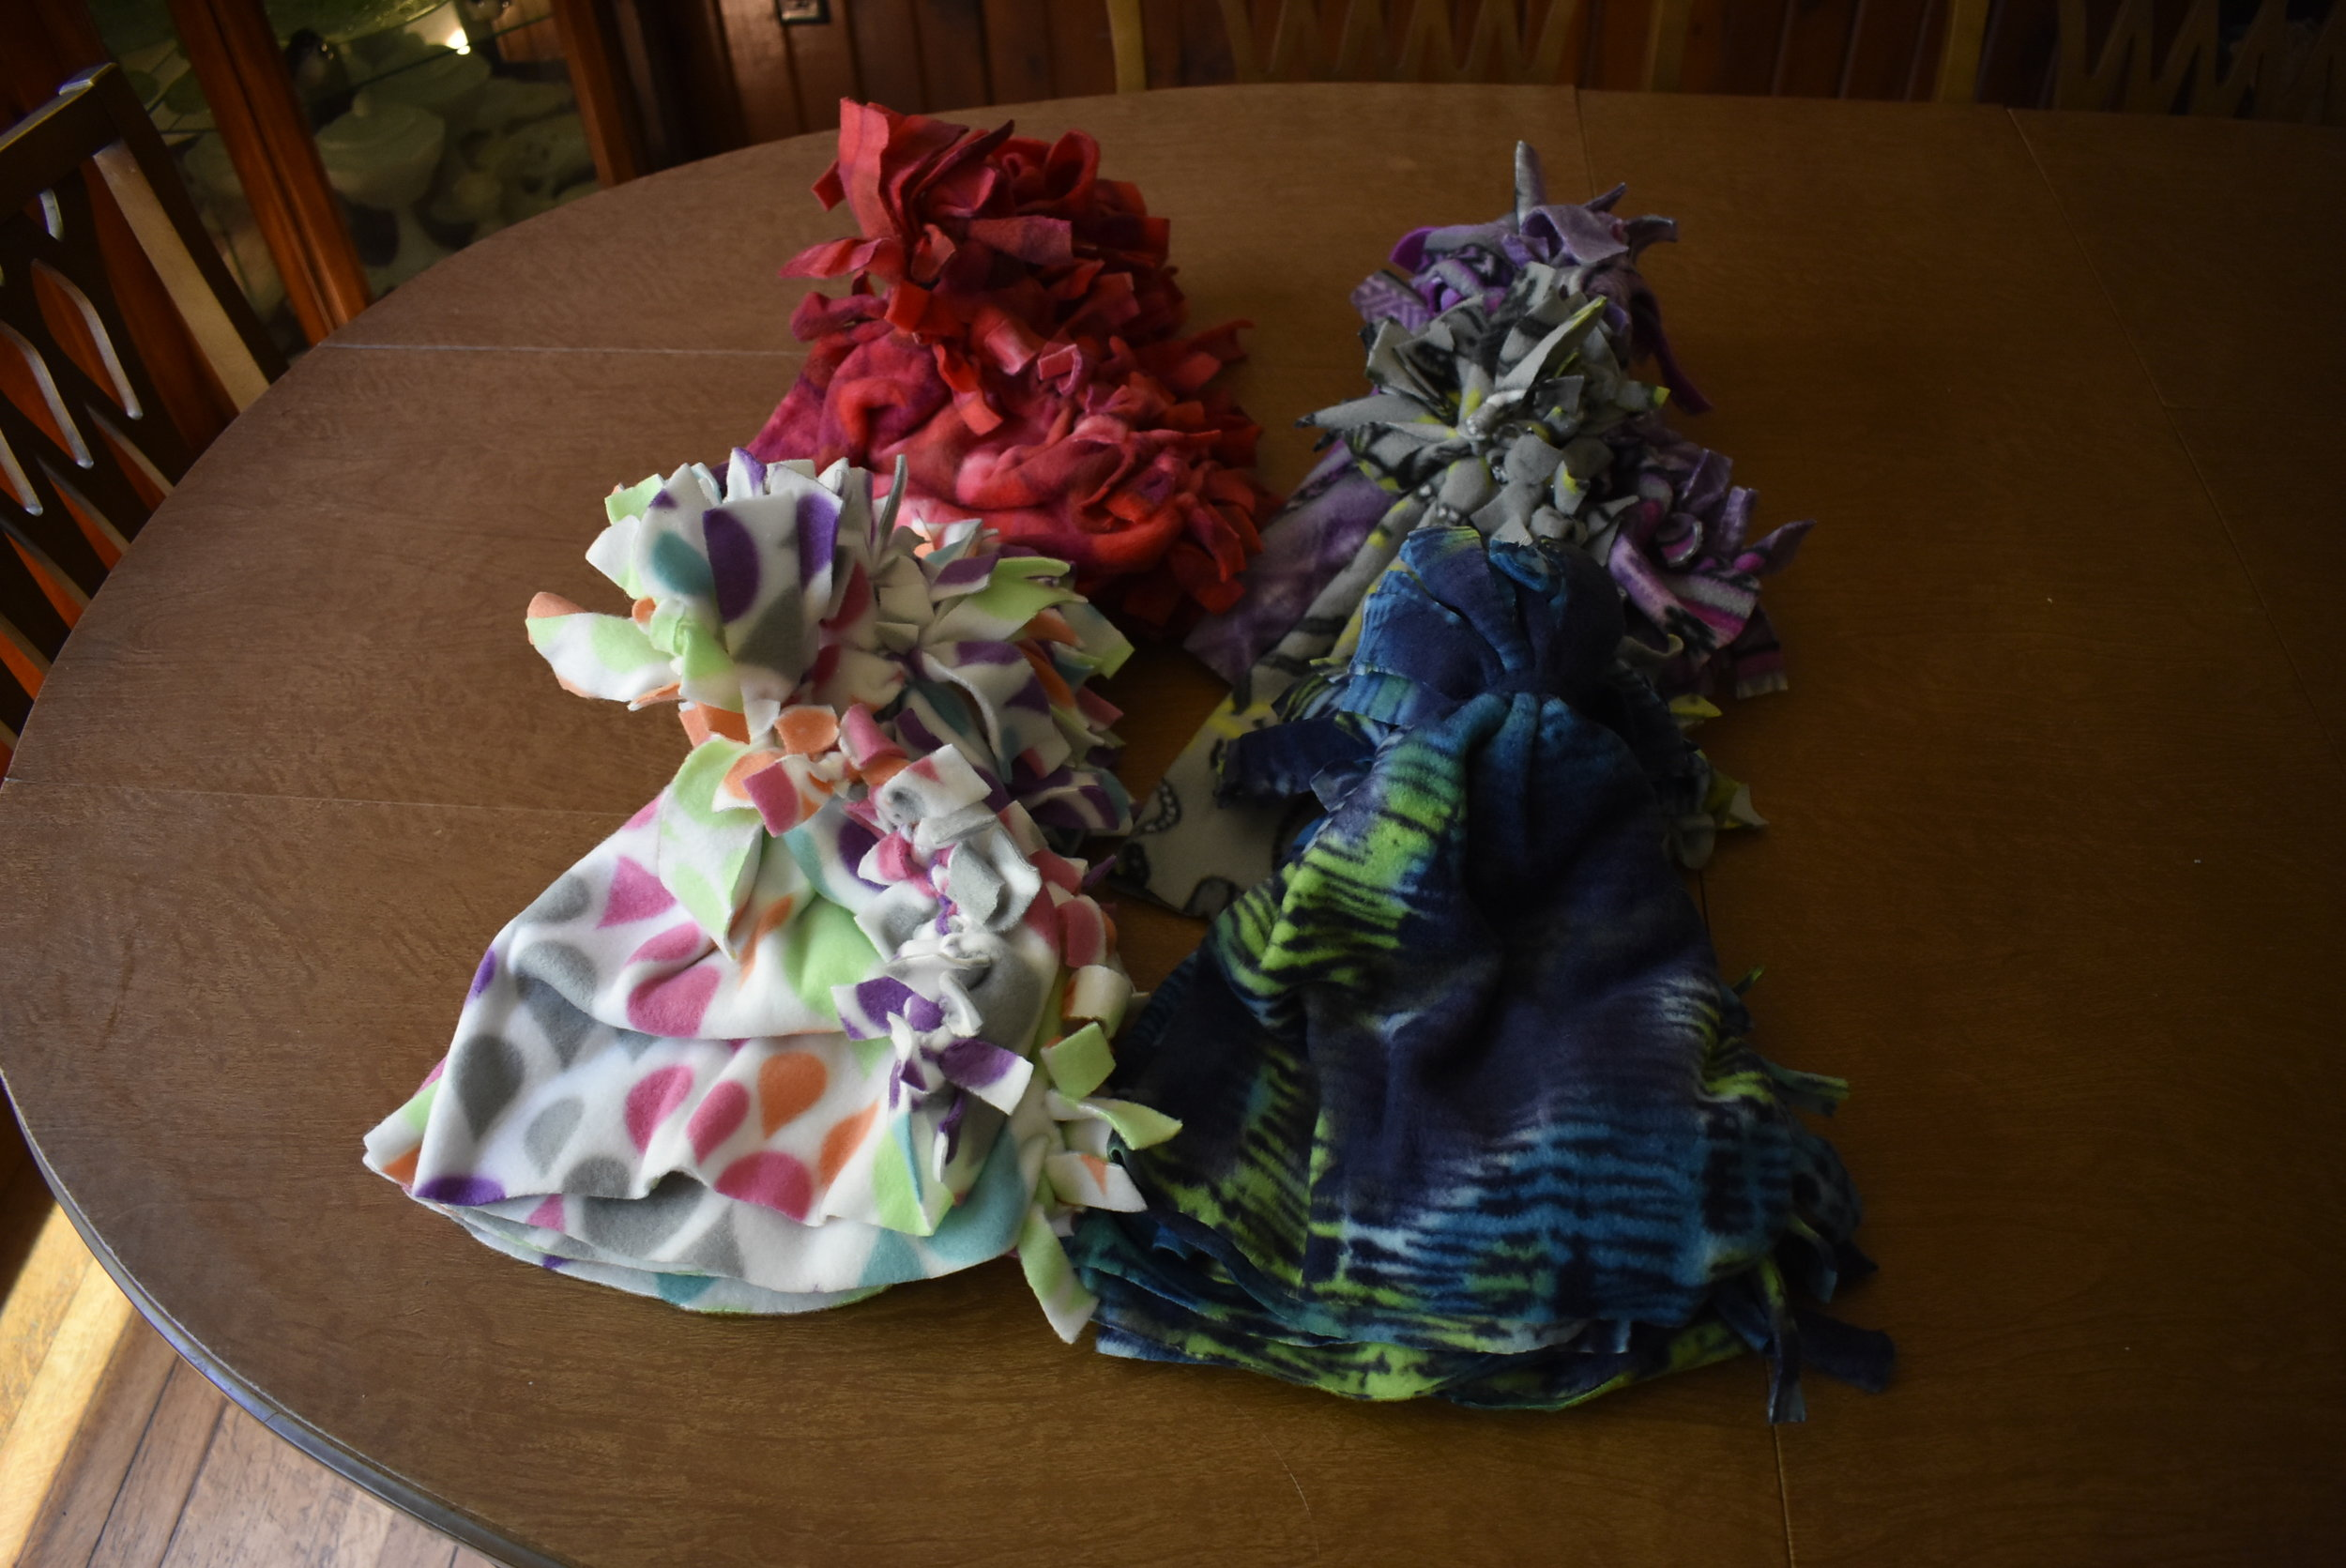 No-sew fleece-tied hats that were made at the Scandia Farmers Market on July 11, 2018. These will be donated to Children's Hospital in Minneapolis for children who have cancer and are undergoing chemotherapy.